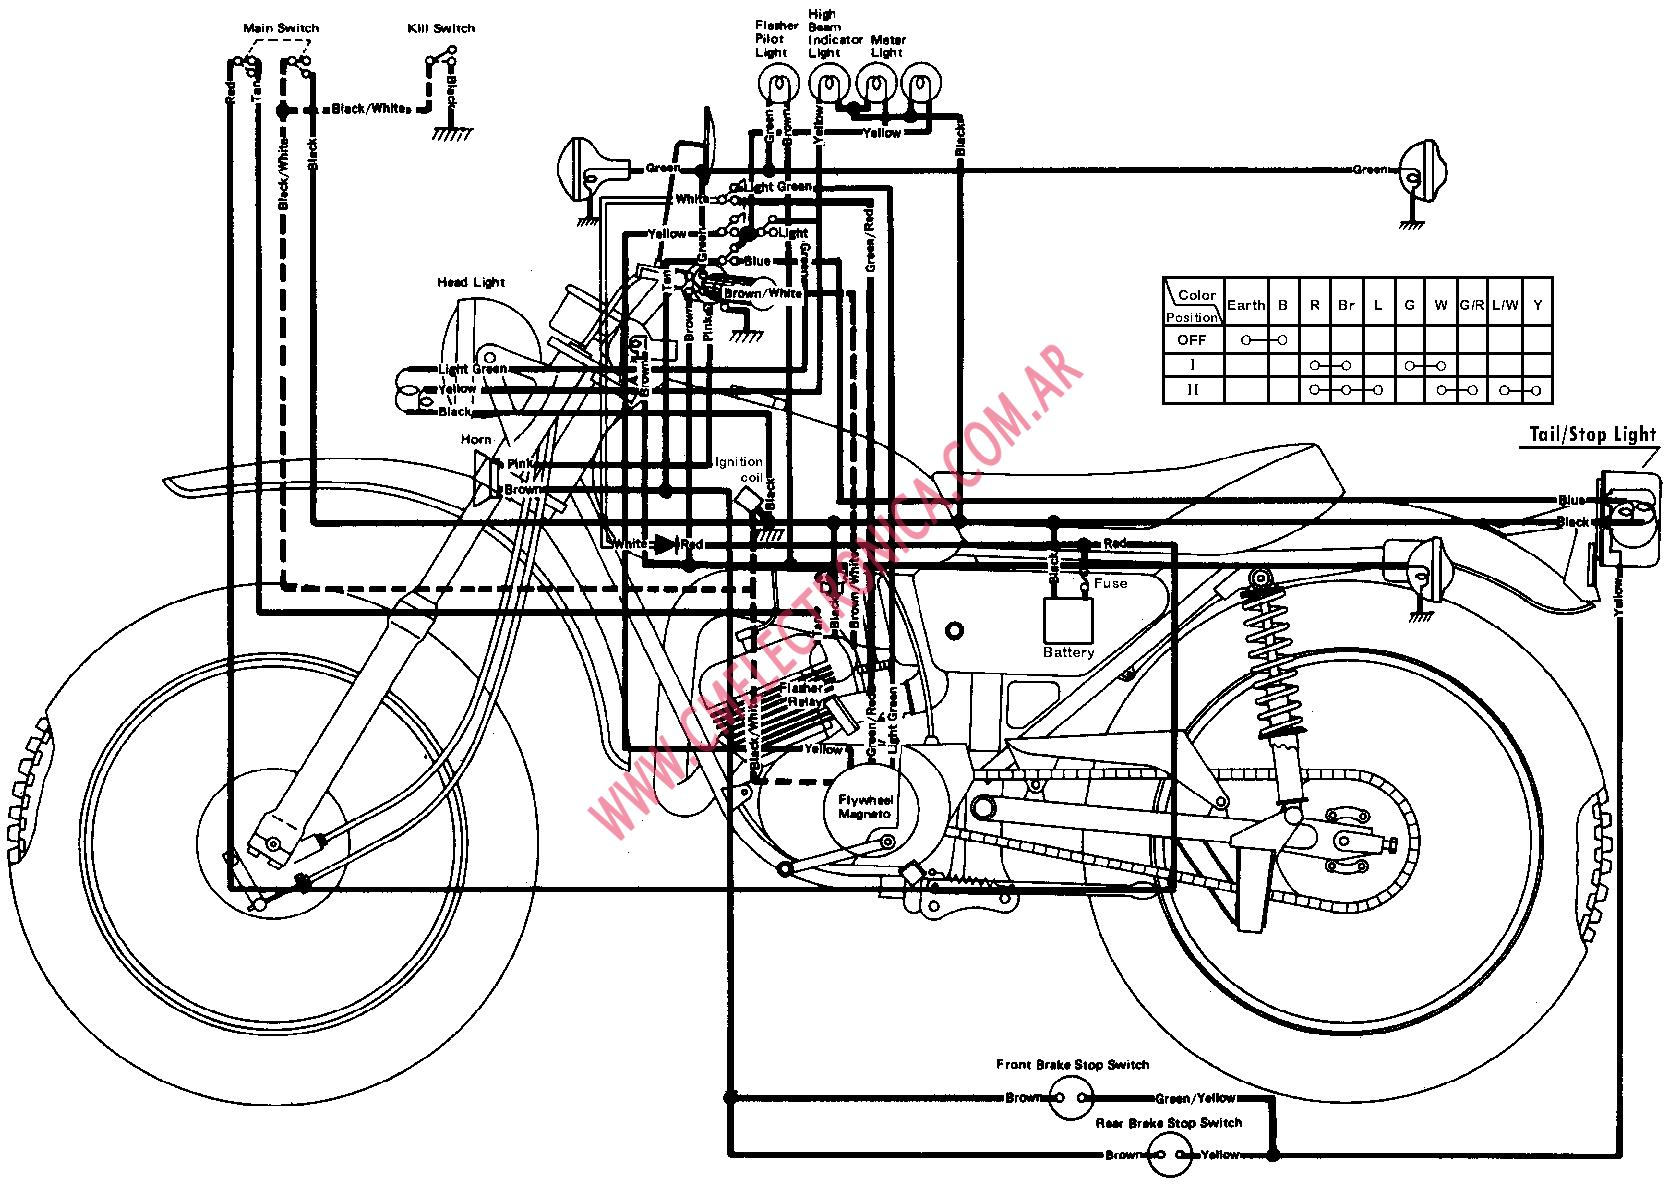 Wiring Diagram For 1975 Yamaha Dt 125, Wiring, Get Free